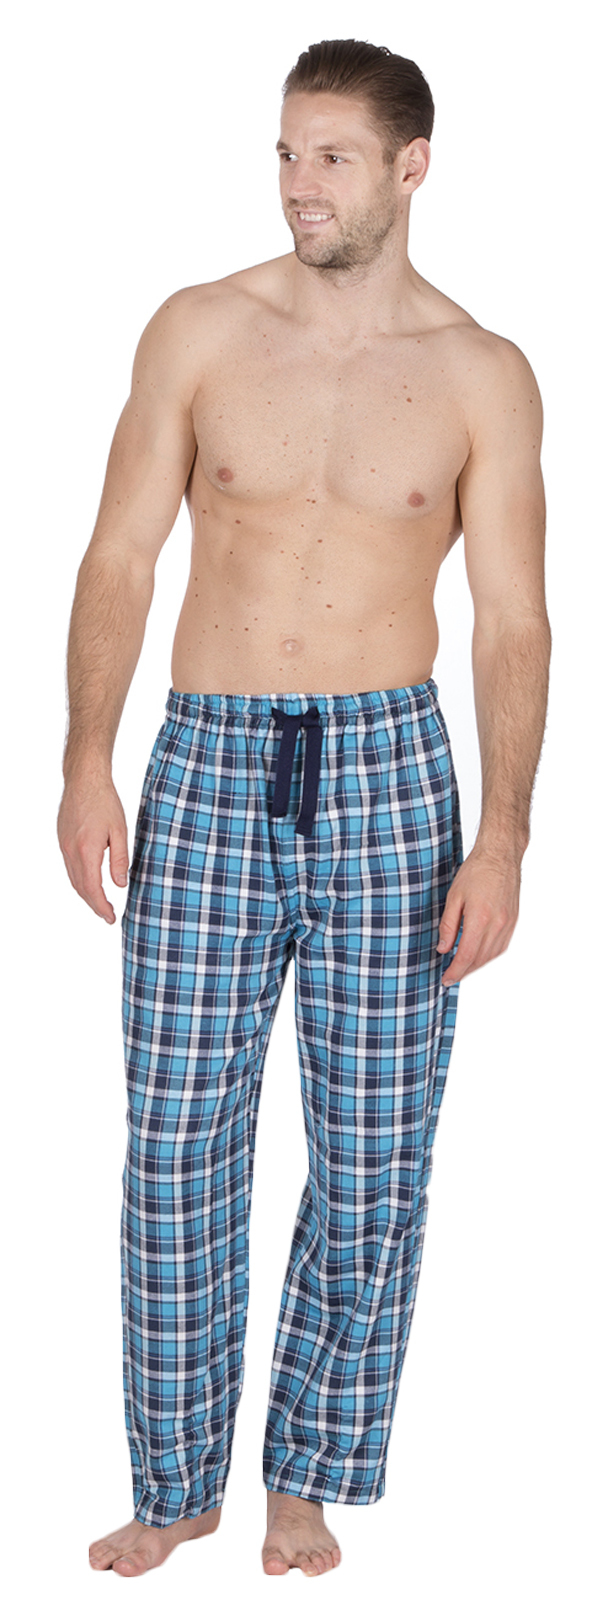 Shop mens lounge pants at Neiman Marcus, where you will find free shipping on the latest in fashion from top designers.